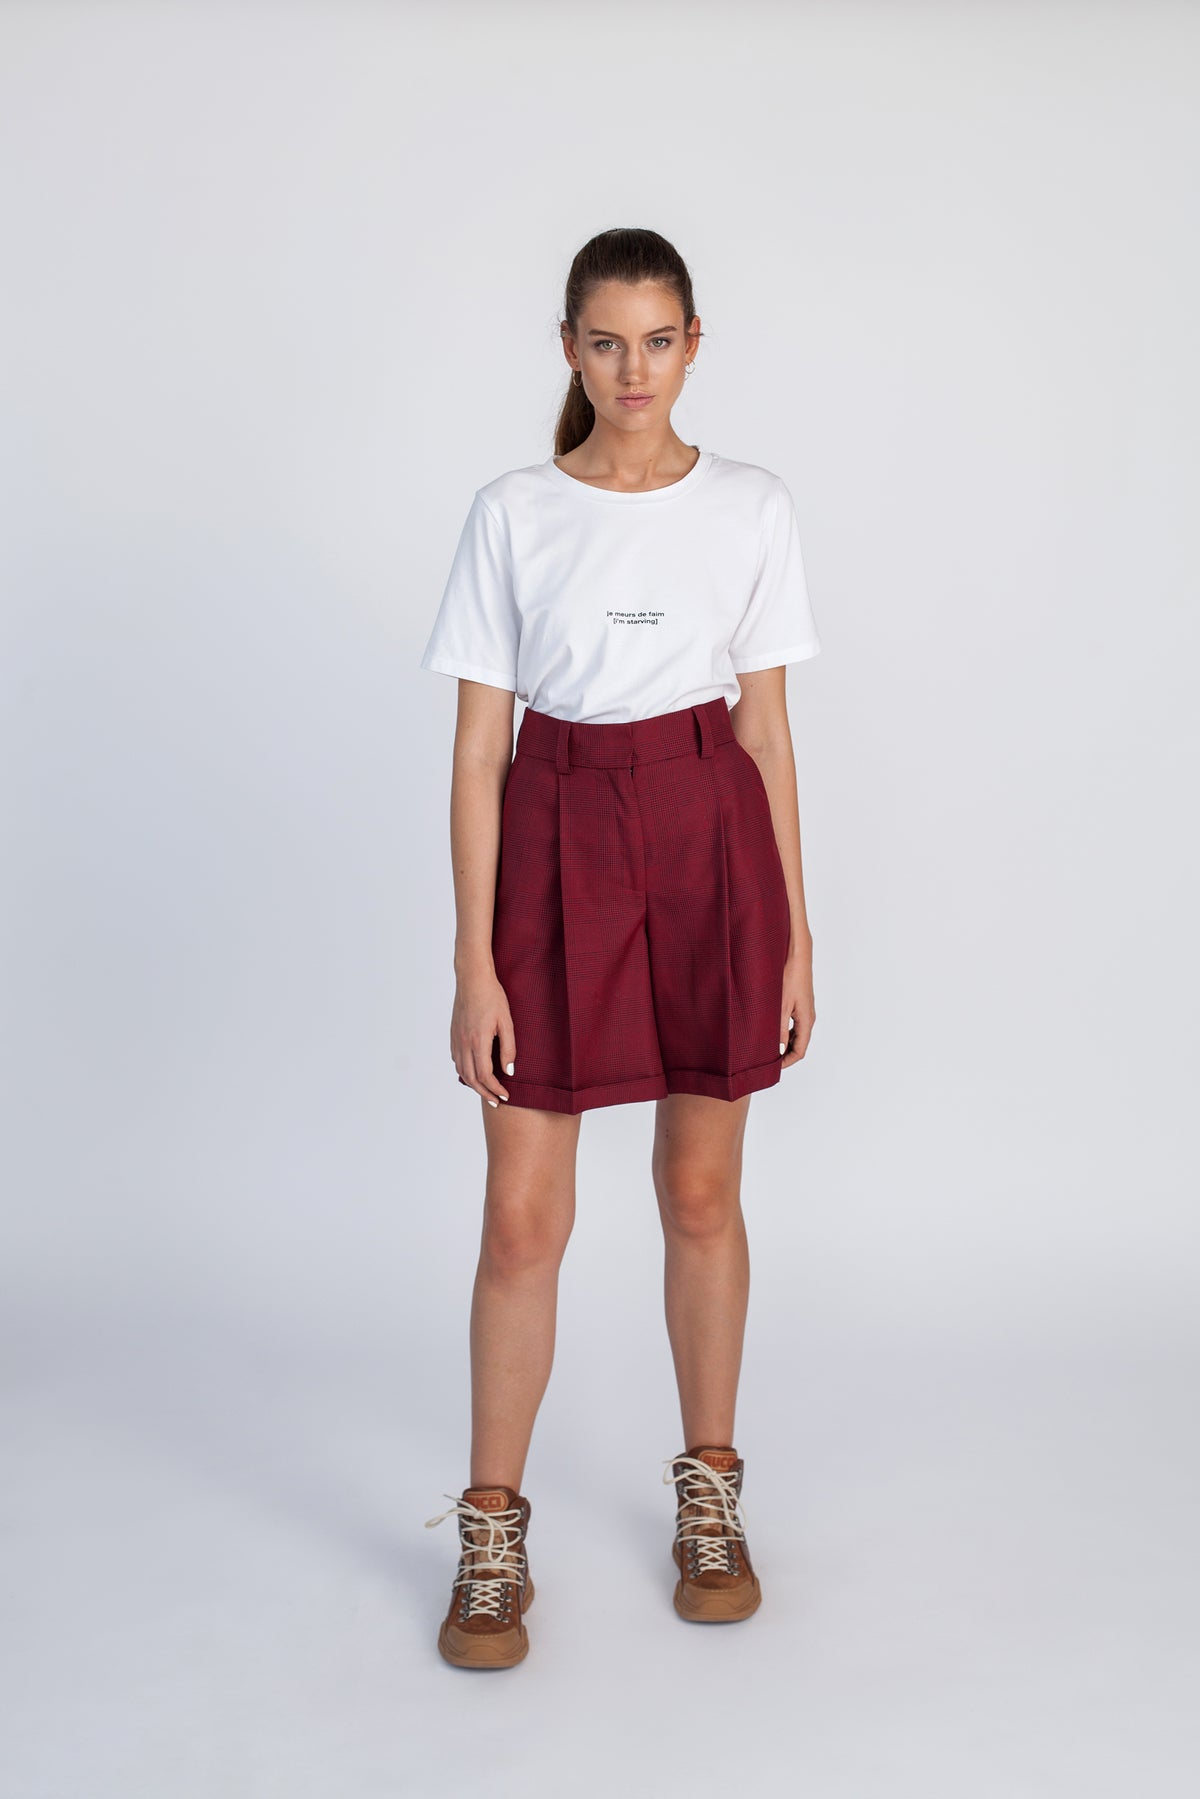 Burgundy-Check-Tailoring-Wide-Leg-Shorts-Clothing-le-slap.jpg